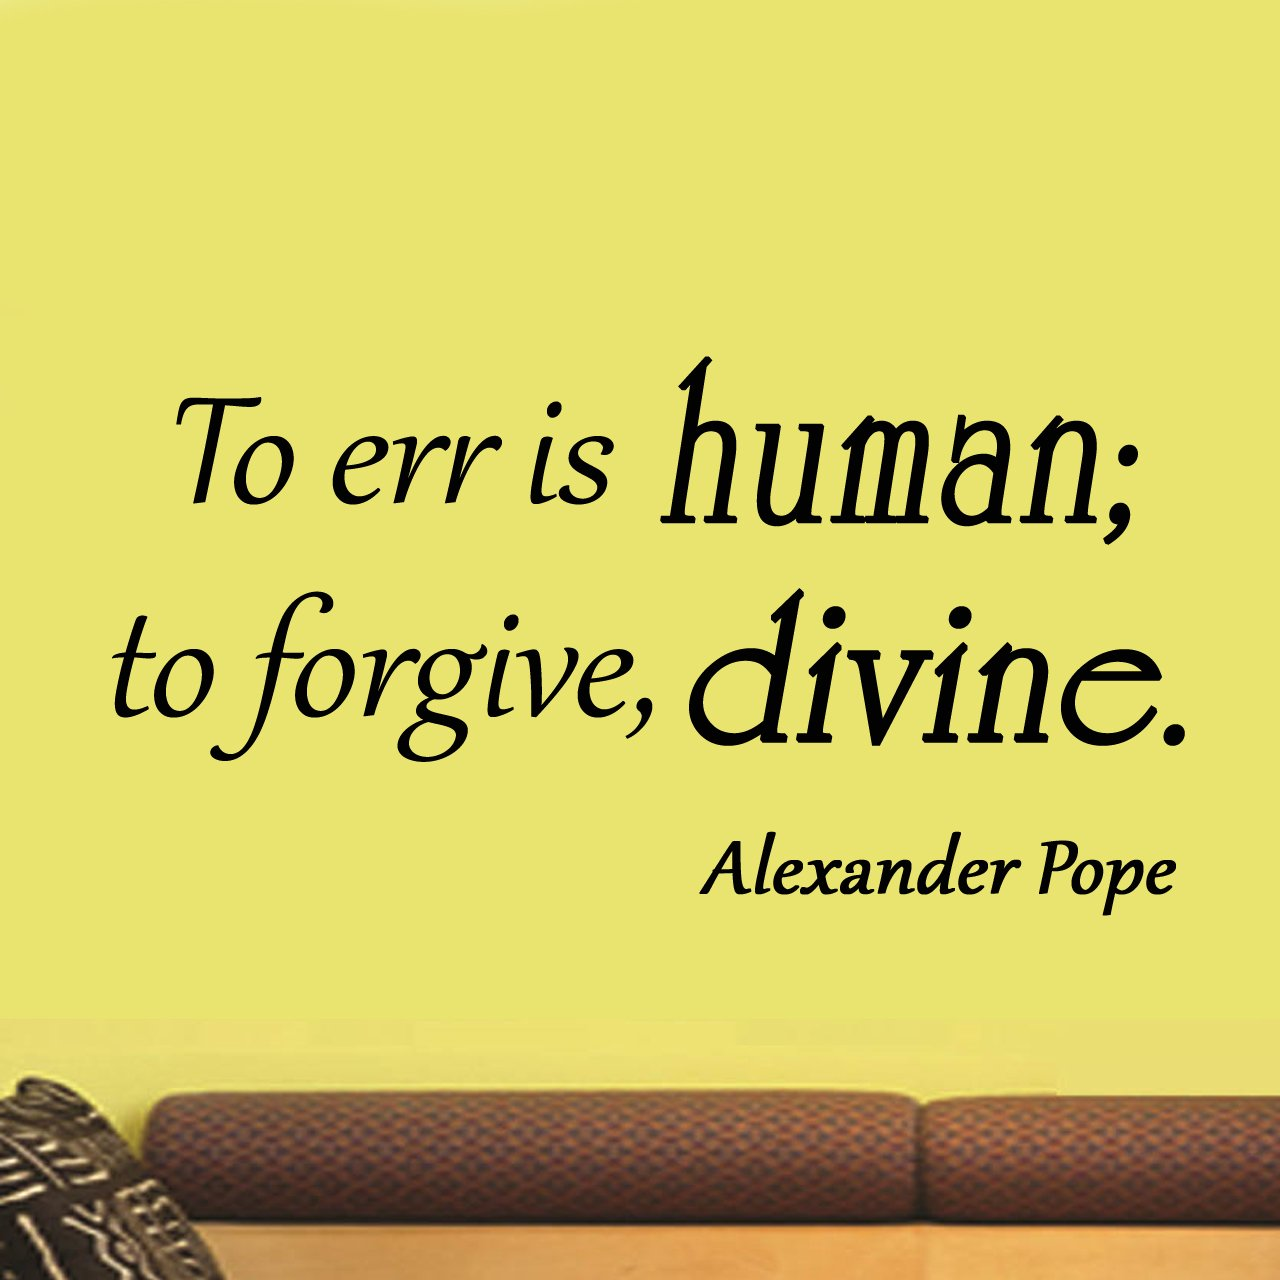 alexander pope quote to err is human to forgive divine wall decal  alexander pope quote to err is human to forgive divine wall decal home decor wall art stickers sayings amazon co uk diy tools